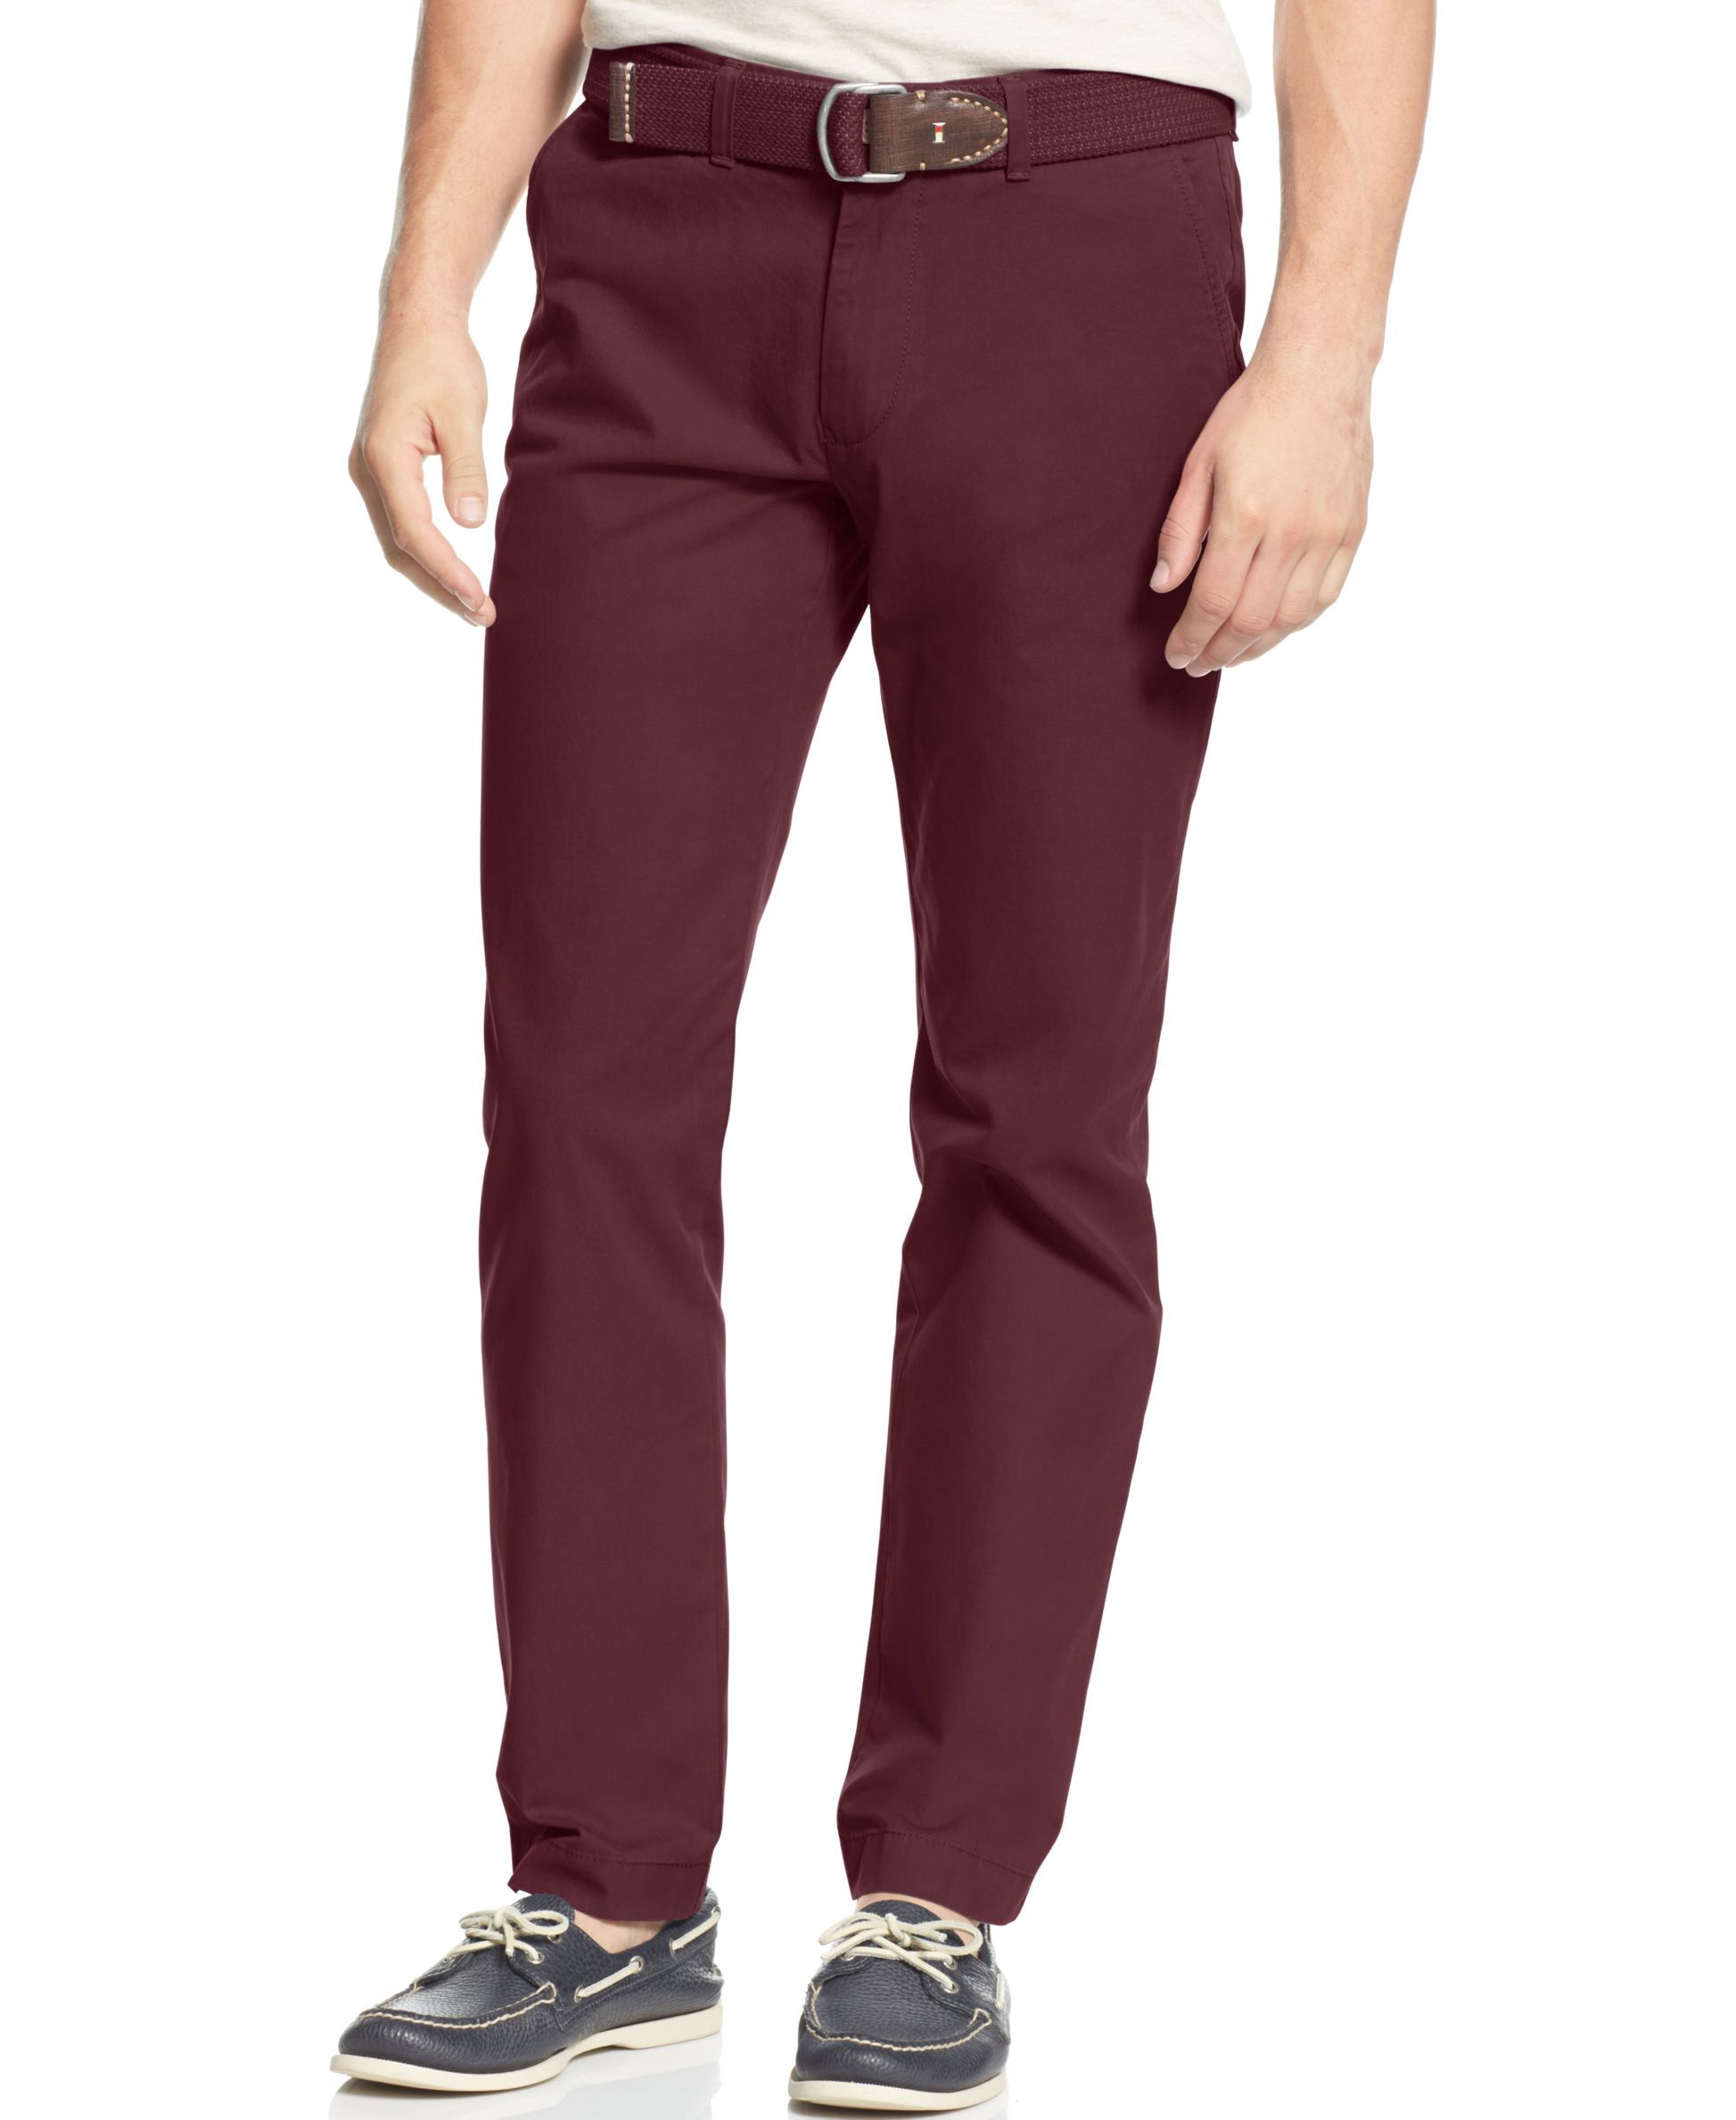 ee250b6ca Tommy Hilfiger Tailored-Fit Chino Pants Tommy Hilfiger Chinos